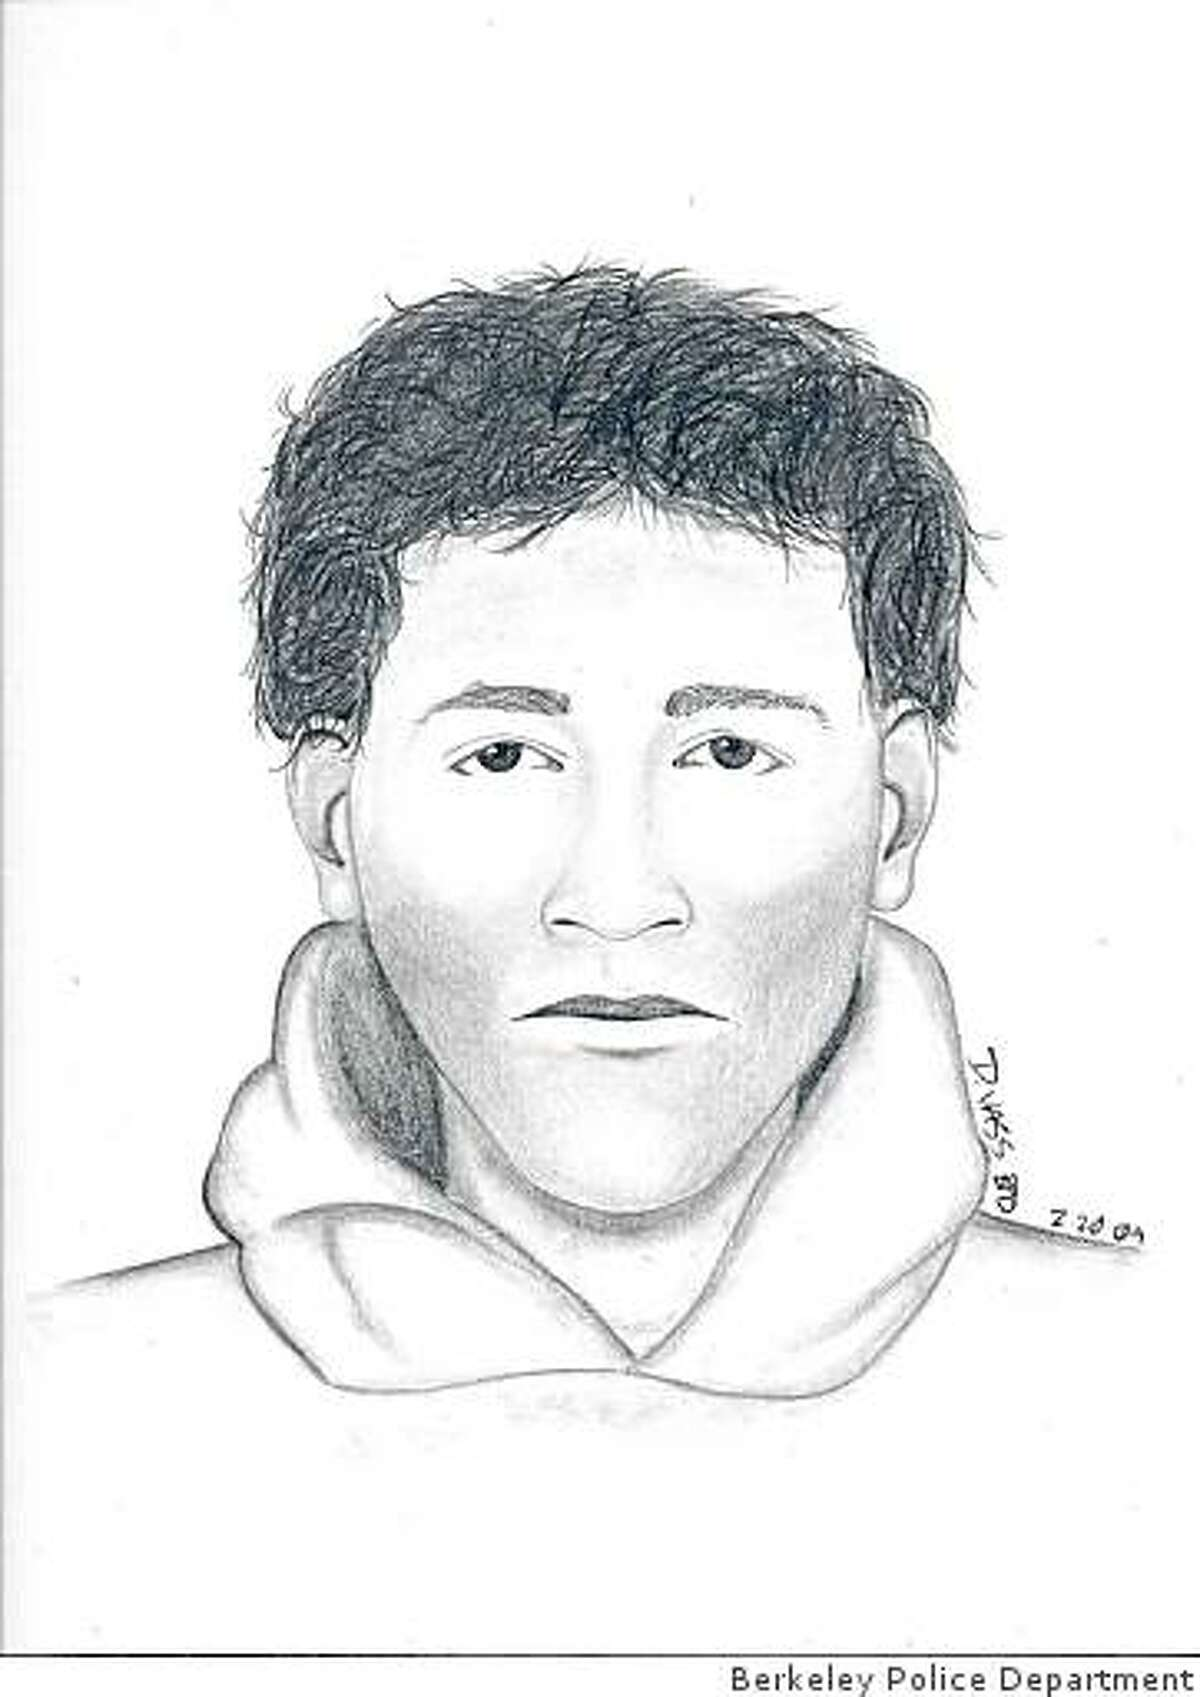 Berkeley police released this sketch Monday, Feb. 23, 2009 of a man who has been accosting women from behind and touching them after lifting their skirts.